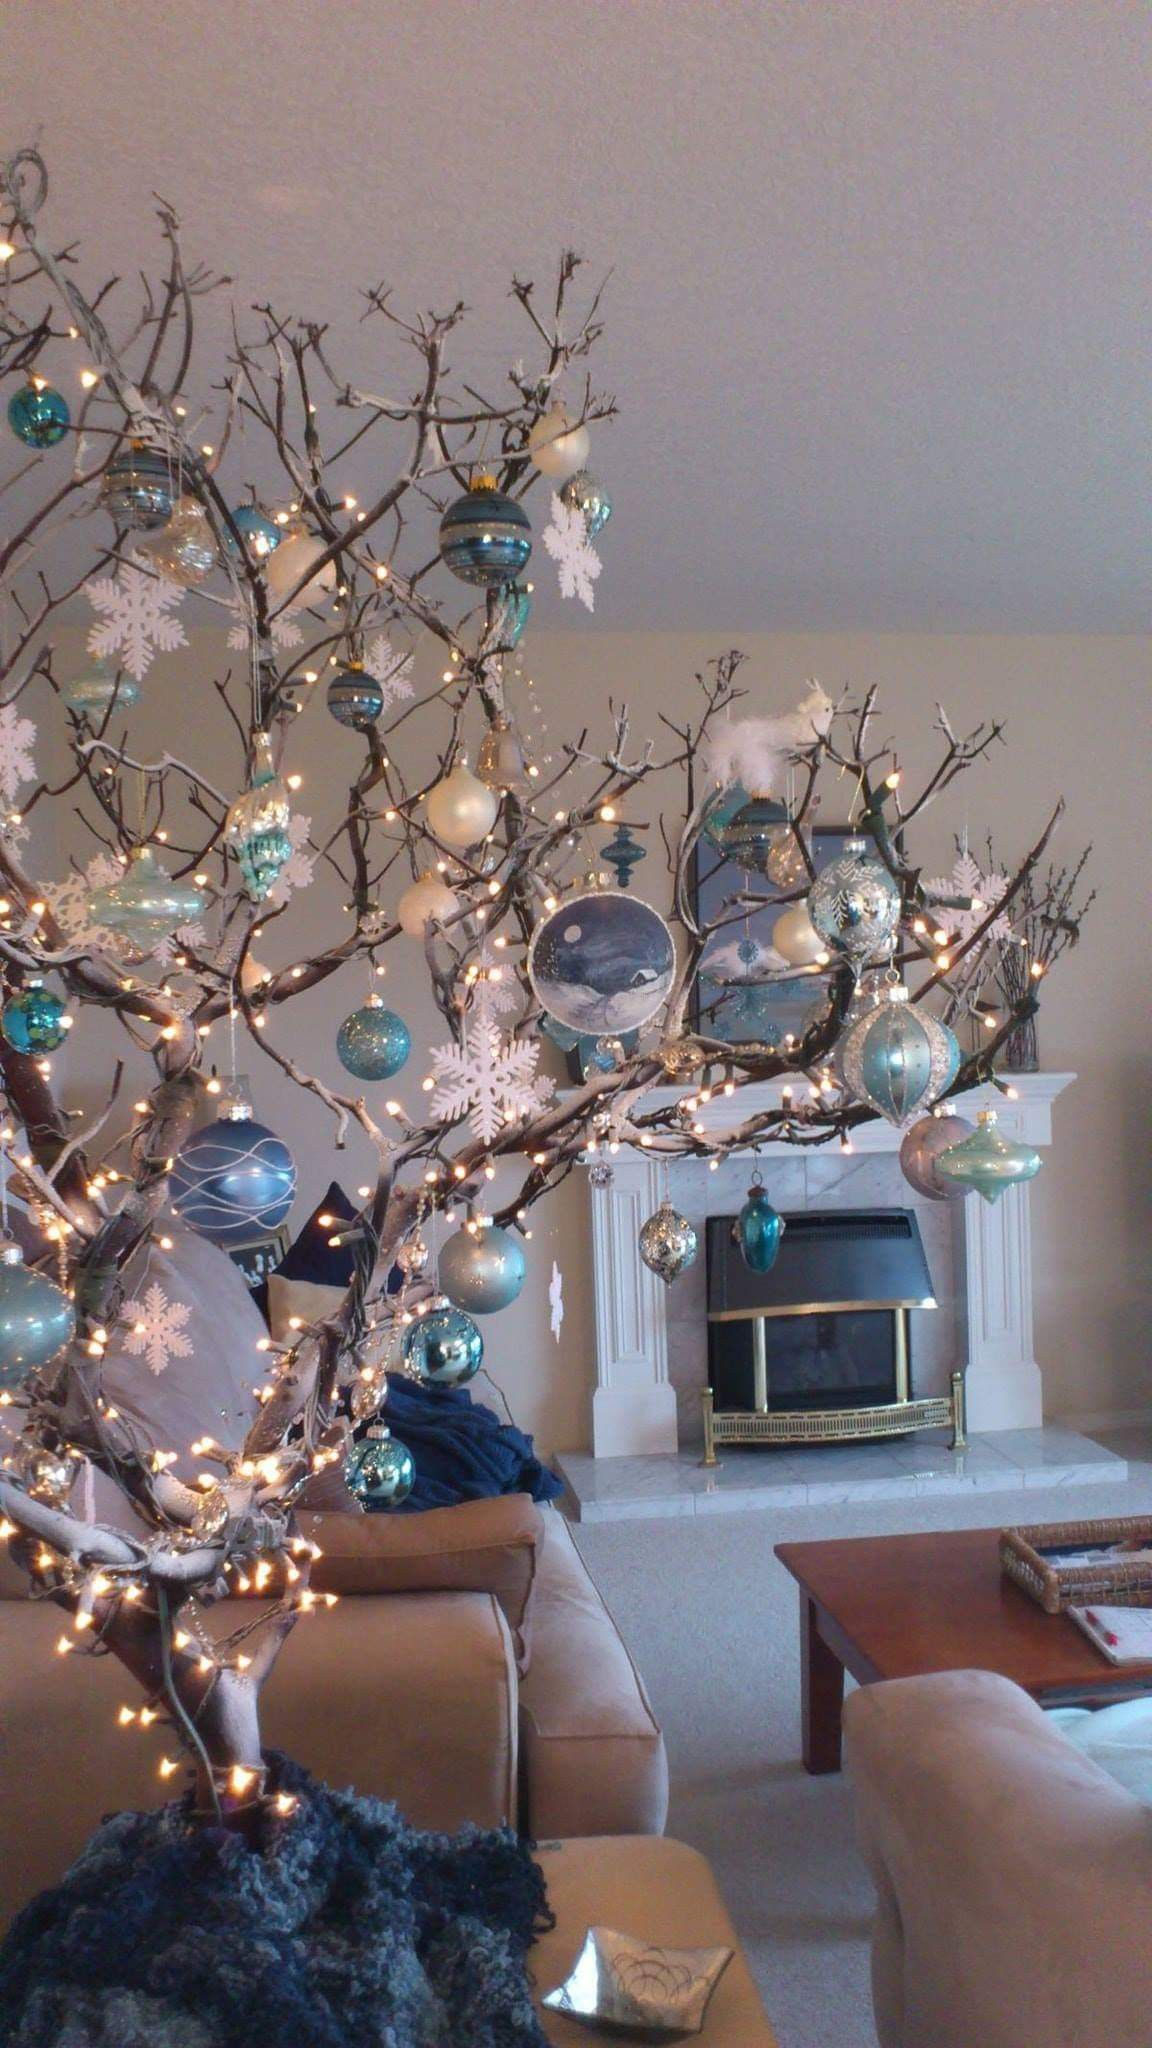 Pin by Susy Hiller on Christmas Decorating Blue